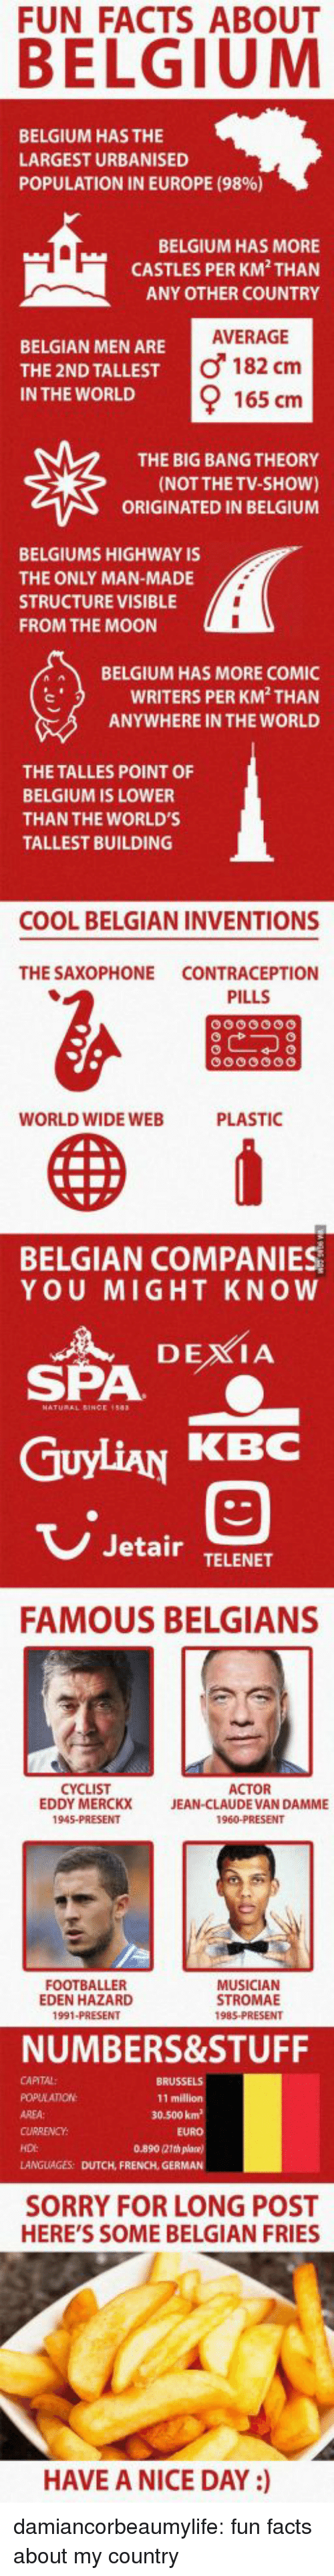 Belgium, Facts, and Jean-Claude Van Damme: FUN FACTS ABOUT  BELGIUM HAS THE  LARGEST URBANISED  POPULATION IN EUROPE (9896)  BELGIUM HAS MORE  CASTLES PER KM THAN  ANY OTHER COUNTRY  AVERAGE  BELGIAN MEN ARE  THE 2ND TALLEST  IN THE WORLD  o 182 cm  165 cm  THE BIG BANG THEORY  (NOT THE TV-sHoW)  ORIGINATED IN BELGIUM  BELGIUMS HIGHWAY IS  THE ONLY MAN-MADE  STRUCTURE VISIBLE  FROM THE MOON  BELGIUM HAS MORE COMIC  WRITERS PER KM THAN  ANYWHERE IN THE WORLD  THE TALLES POINT OF  BELGIUM IS LOWER  THAN THE WORLD'S  TALLEST BUILDING  COOL BELGIAN INVENTIONS  THE SAXOPHONE CONTRACEPTION  PILLS  WORLD WIDE WEB  PLASTIC  BELGIAN COMPANIES  YOU MIGHT KNOW  SPA  GuyLiAN KBC  3  Jetair TELENET  FAMOUS BELGIANS  CYCLIST  EDDY MERCKX  ACTOR  JEAN-CLAUDE VAN DAMME  FOOTBALLER  EDEN HAZARD  1991 PRESENT  MUSICIAN  STROMAE  NUMBERS&STUFF  CAPITAL:  11 million  30.500 kn  AREA:  EURO  0.890 21th plane)  LANGUAGES: DUTCH, FRENCH, GERMAN  HDI  SORRY FOR LONG POST  HERE'S SOME BELGIAN FRIES  HAVE A NICE DAY ) damiancorbeaumylife:  fun facts about my country